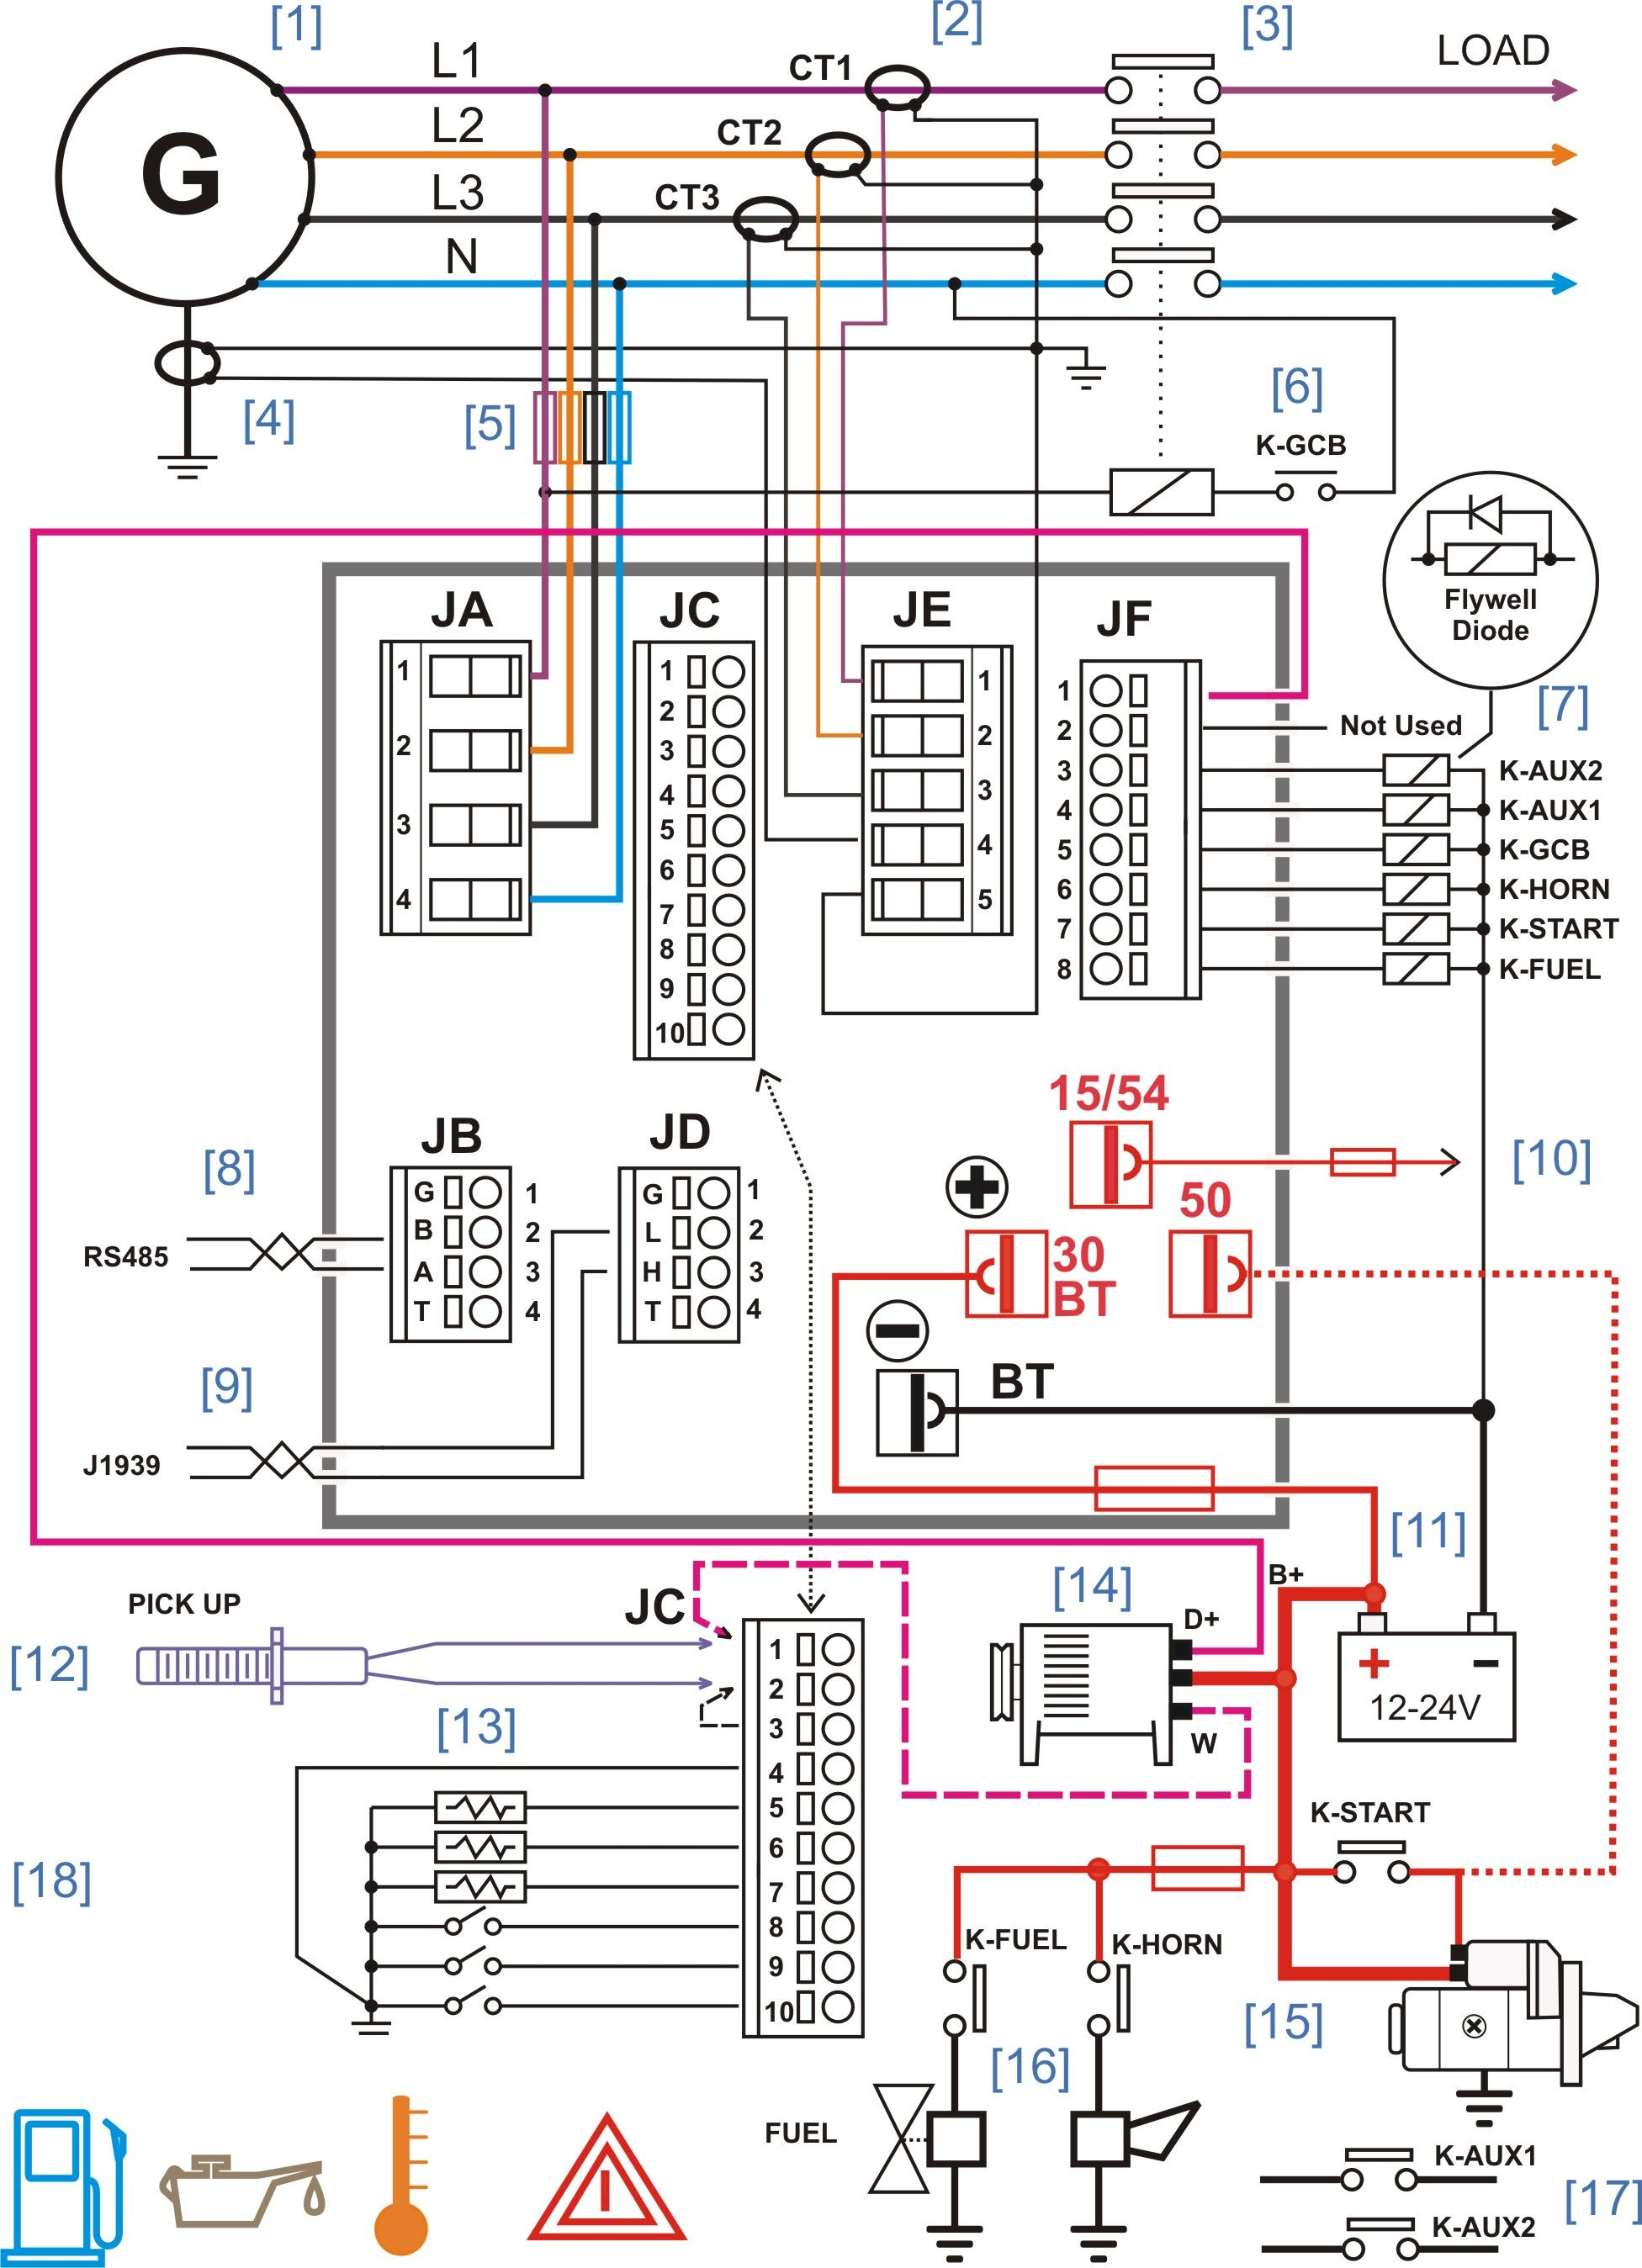 vcb panel wiring diagram diesel generator control panel wiring diagram | diesel ... solar panel wiring diagram for home